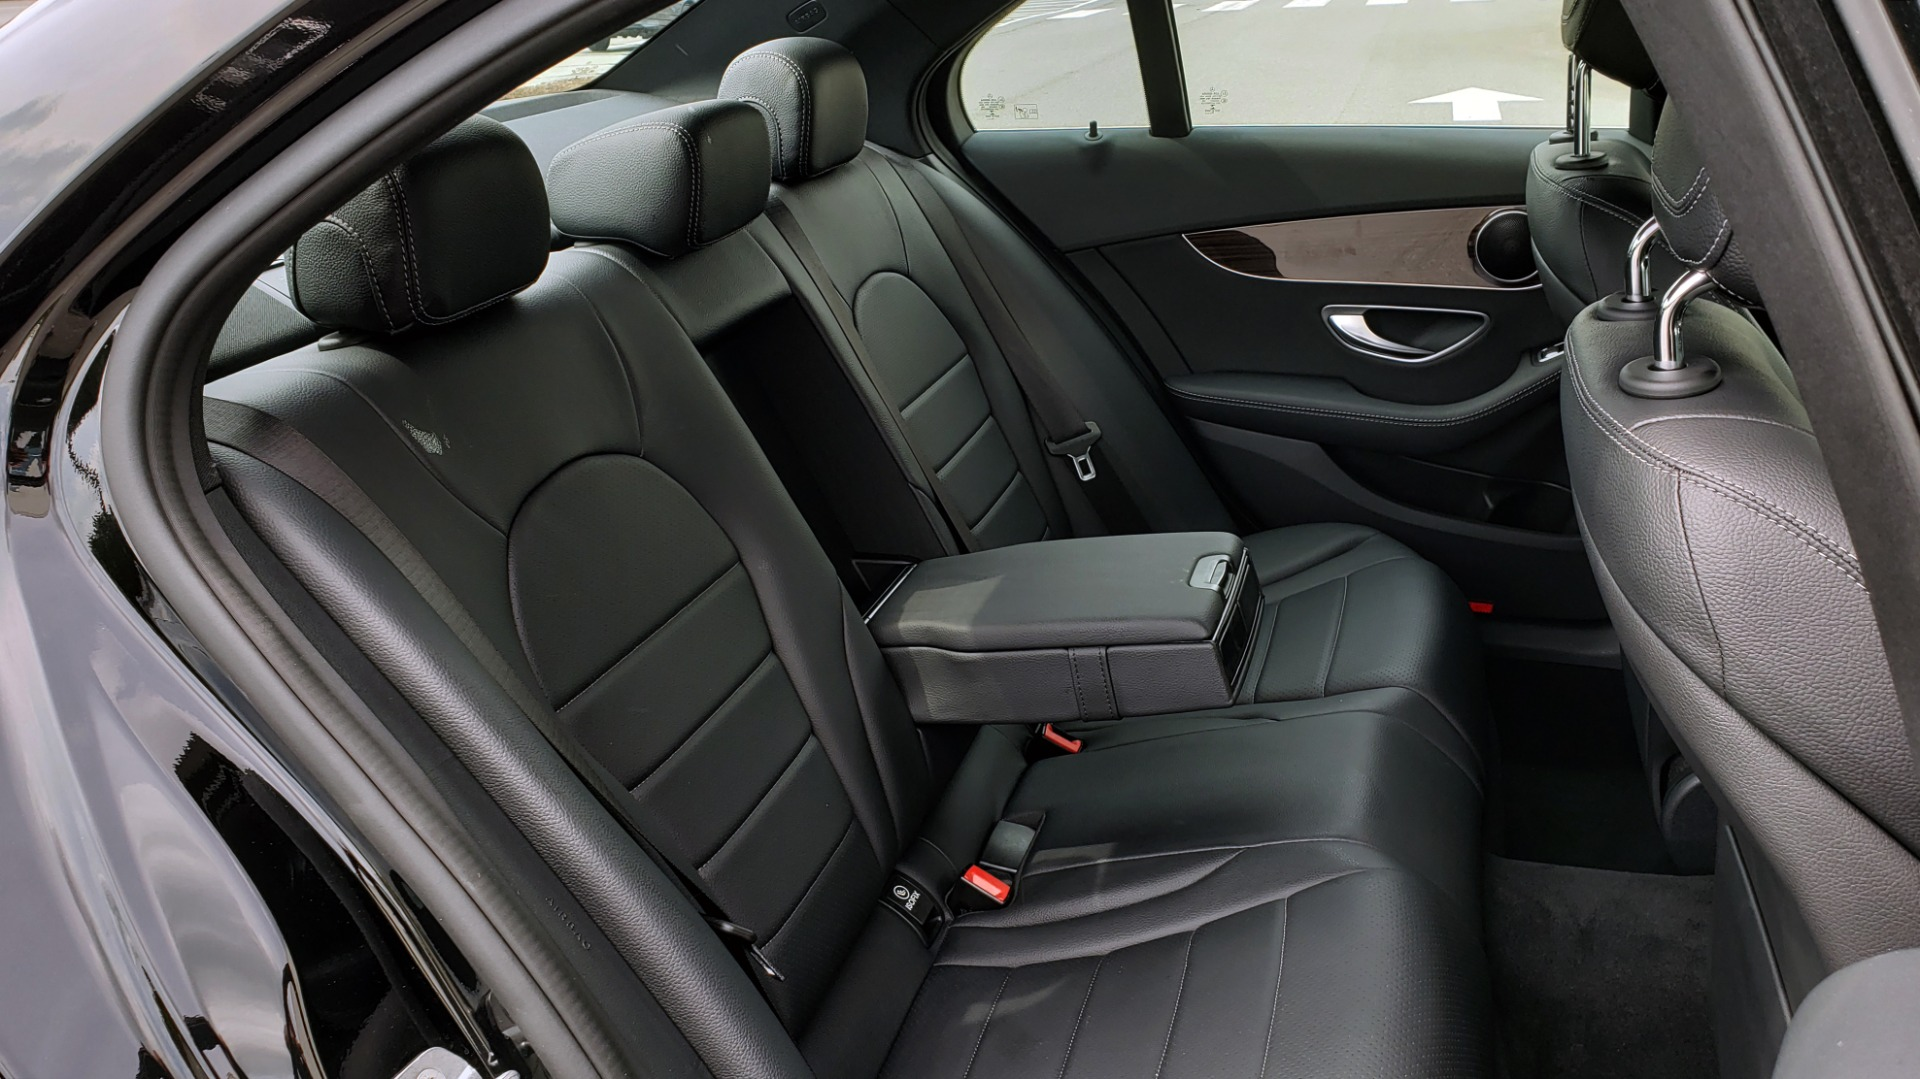 Used 2018 Mercedes-Benz C-CLASS C 300 PREMIUM / HTD STS / APPLE CARPLAY / 18IN WHEELS / REARVIEW for sale $24,795 at Formula Imports in Charlotte NC 28227 75